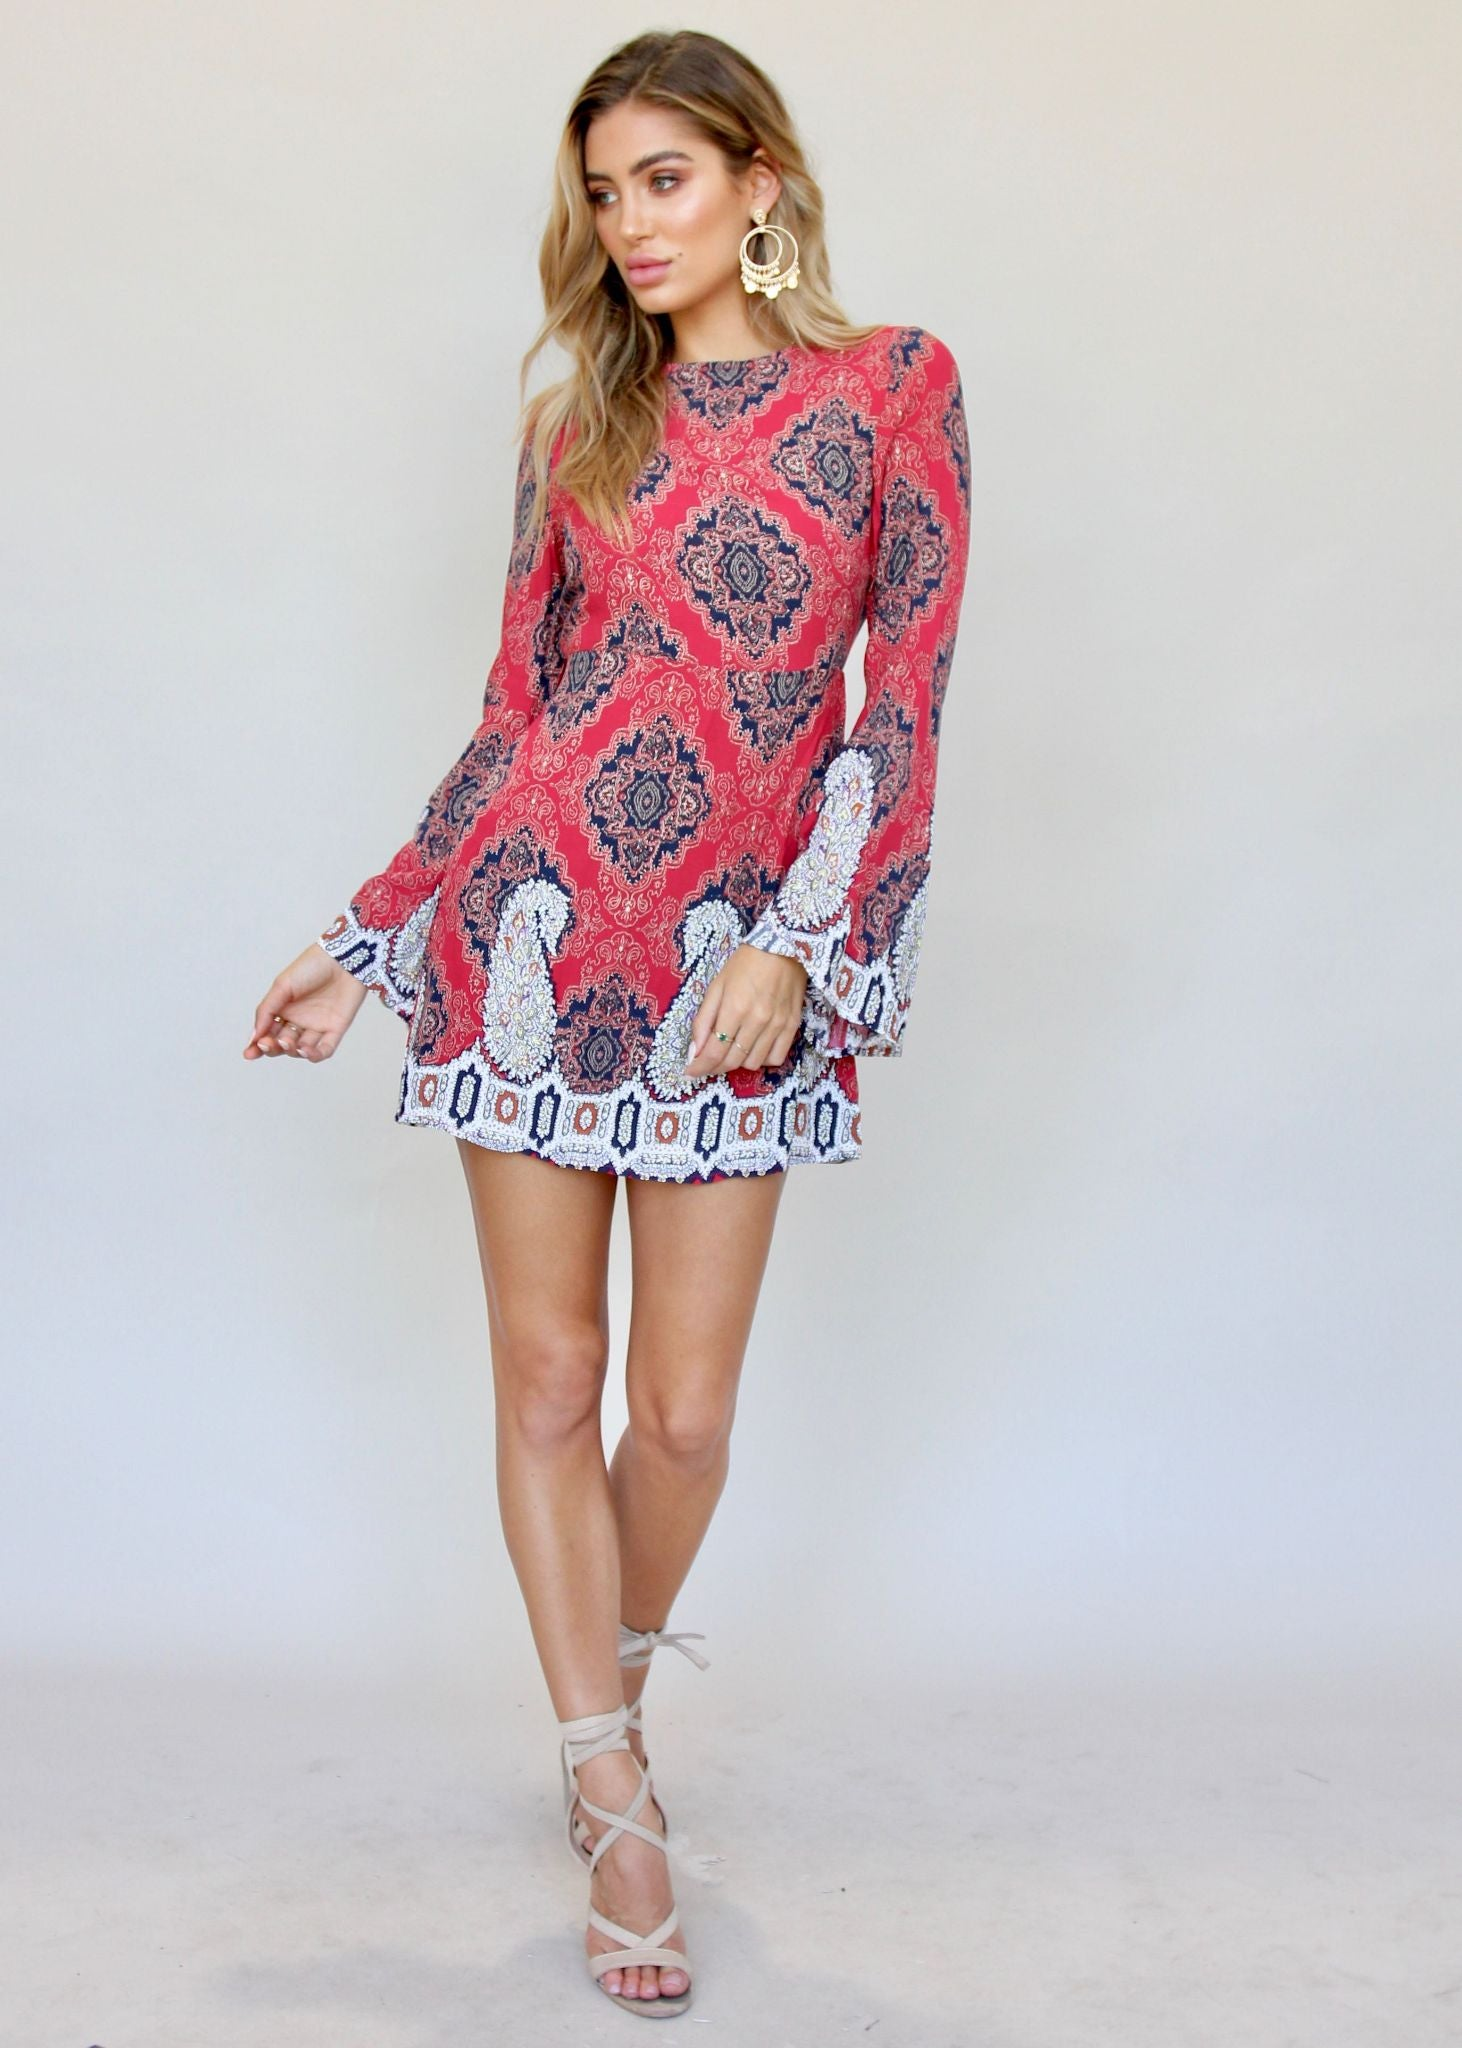 Trip Me Up Dress - Red Baroque